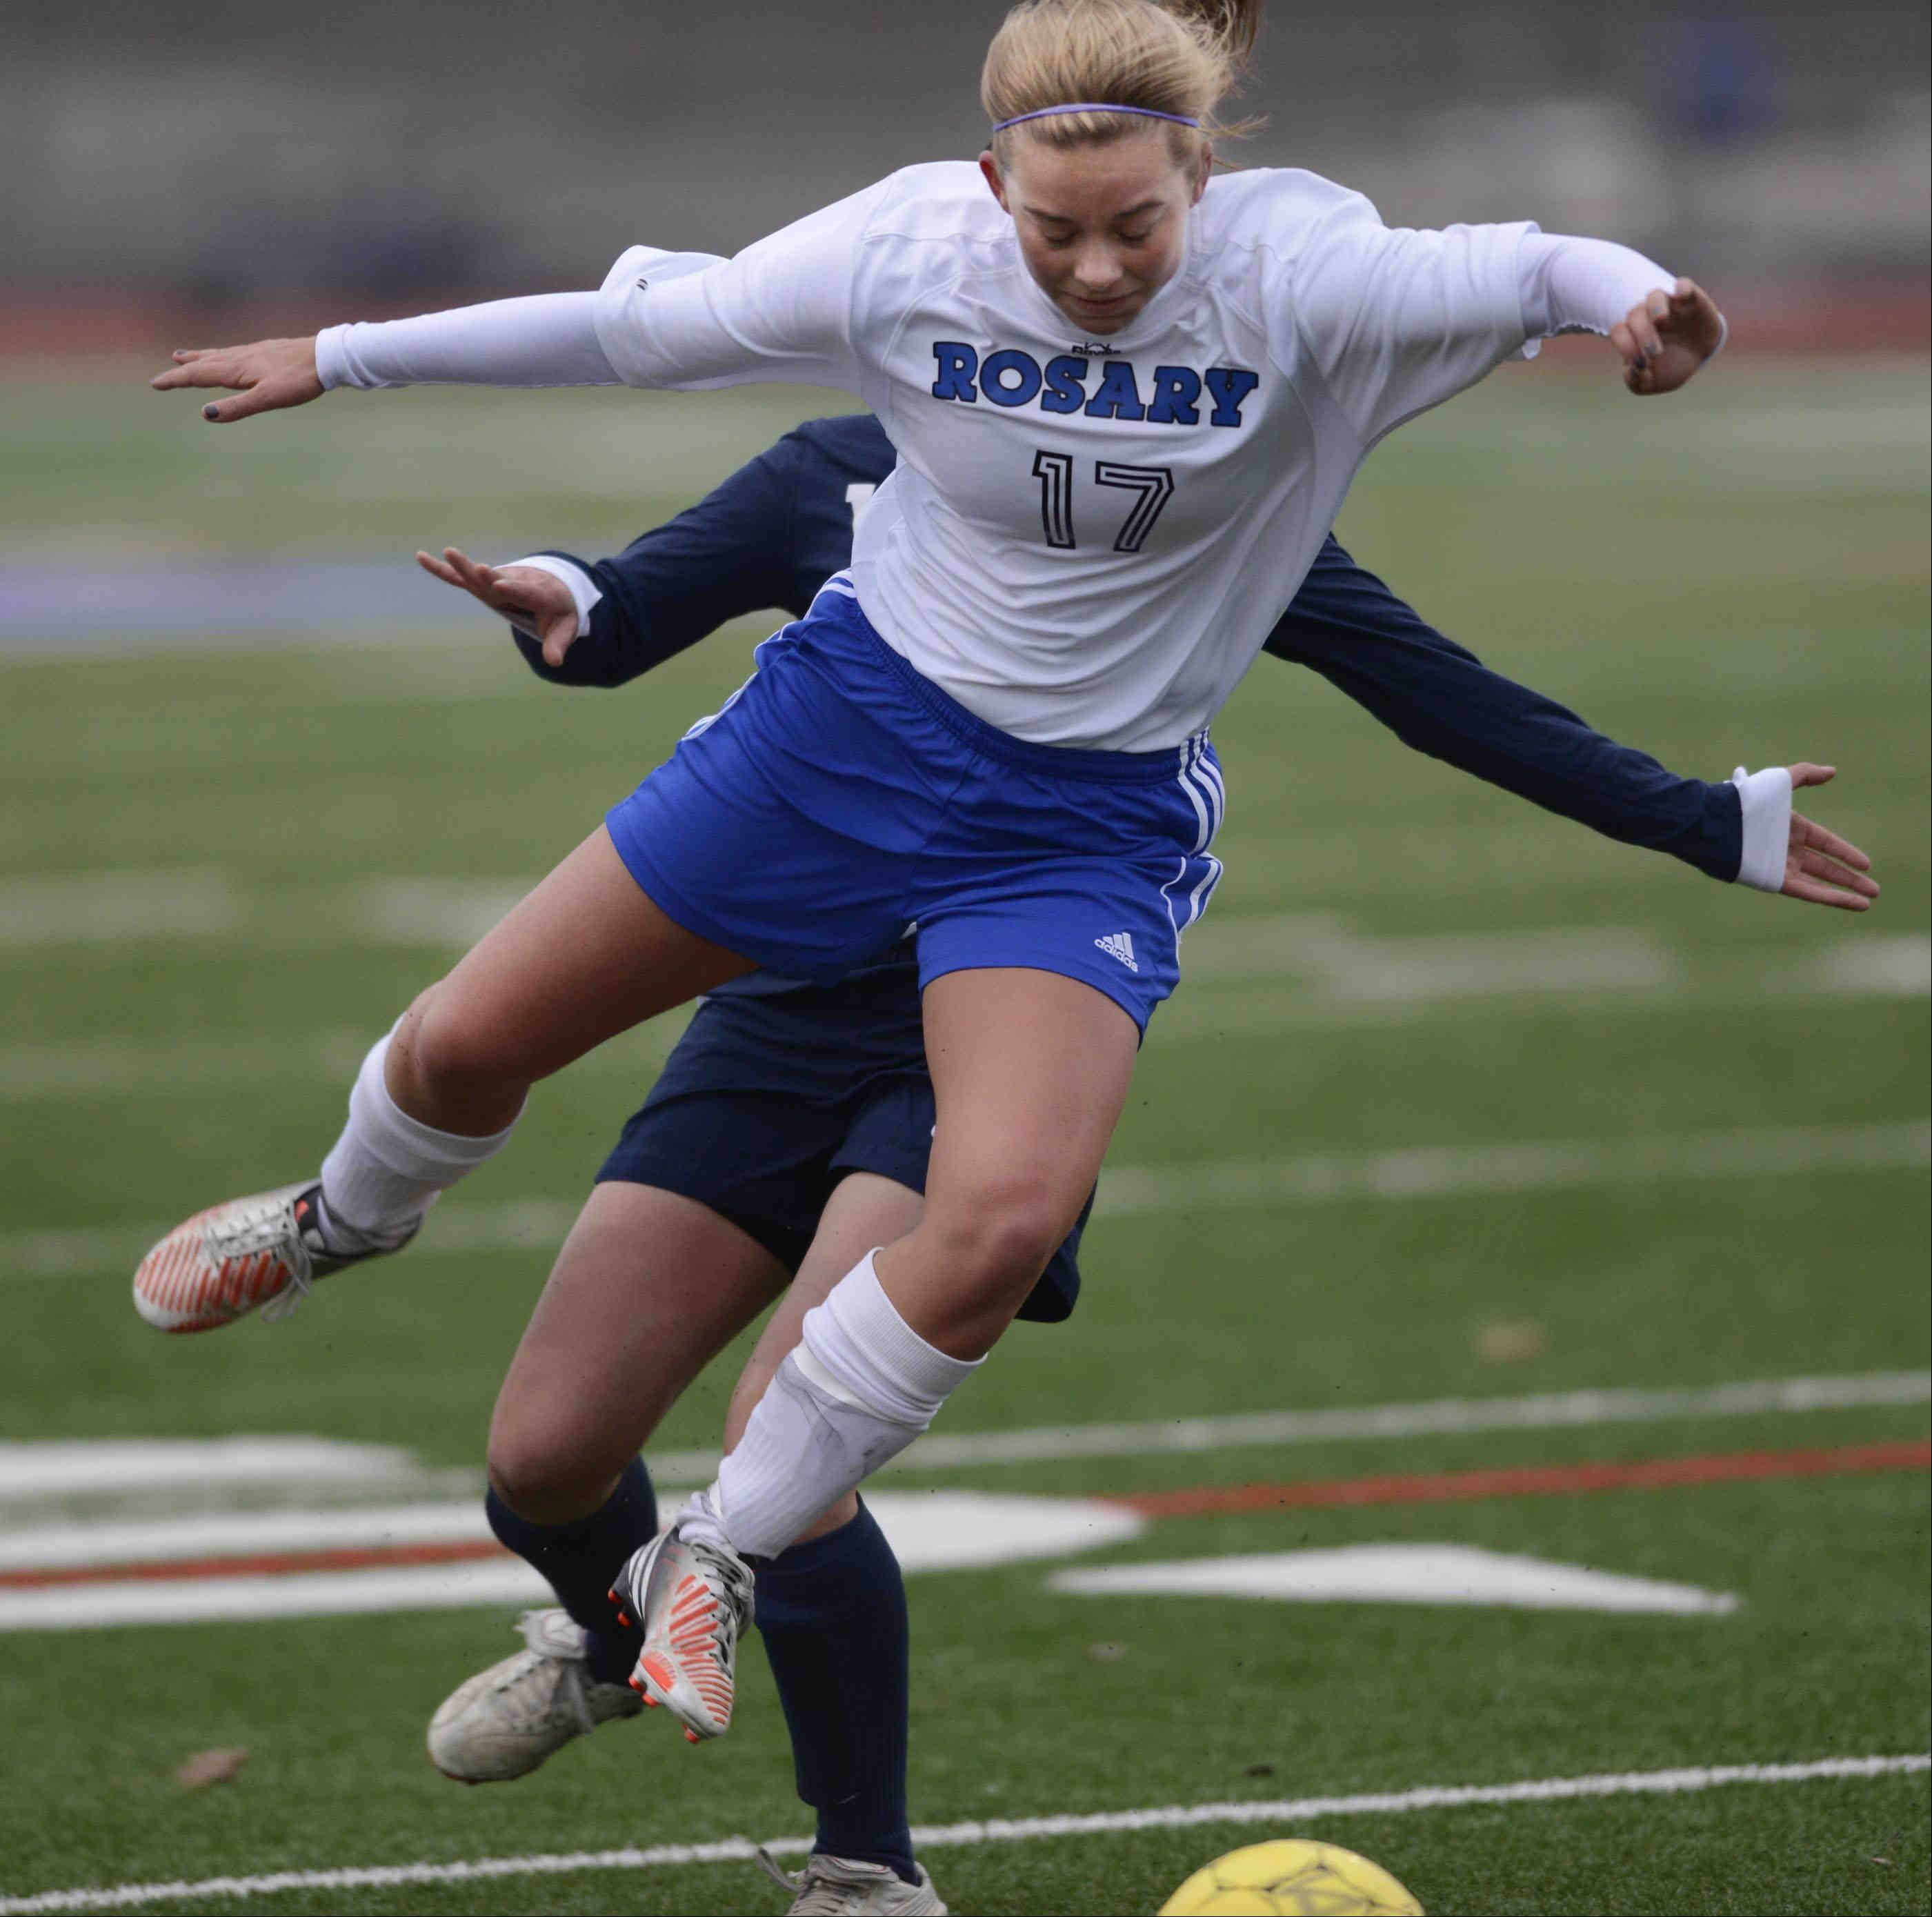 Rosary's Taylor Gibson skips over the defense of West Aurora's Catalina Campos Wednesday in Aurora.